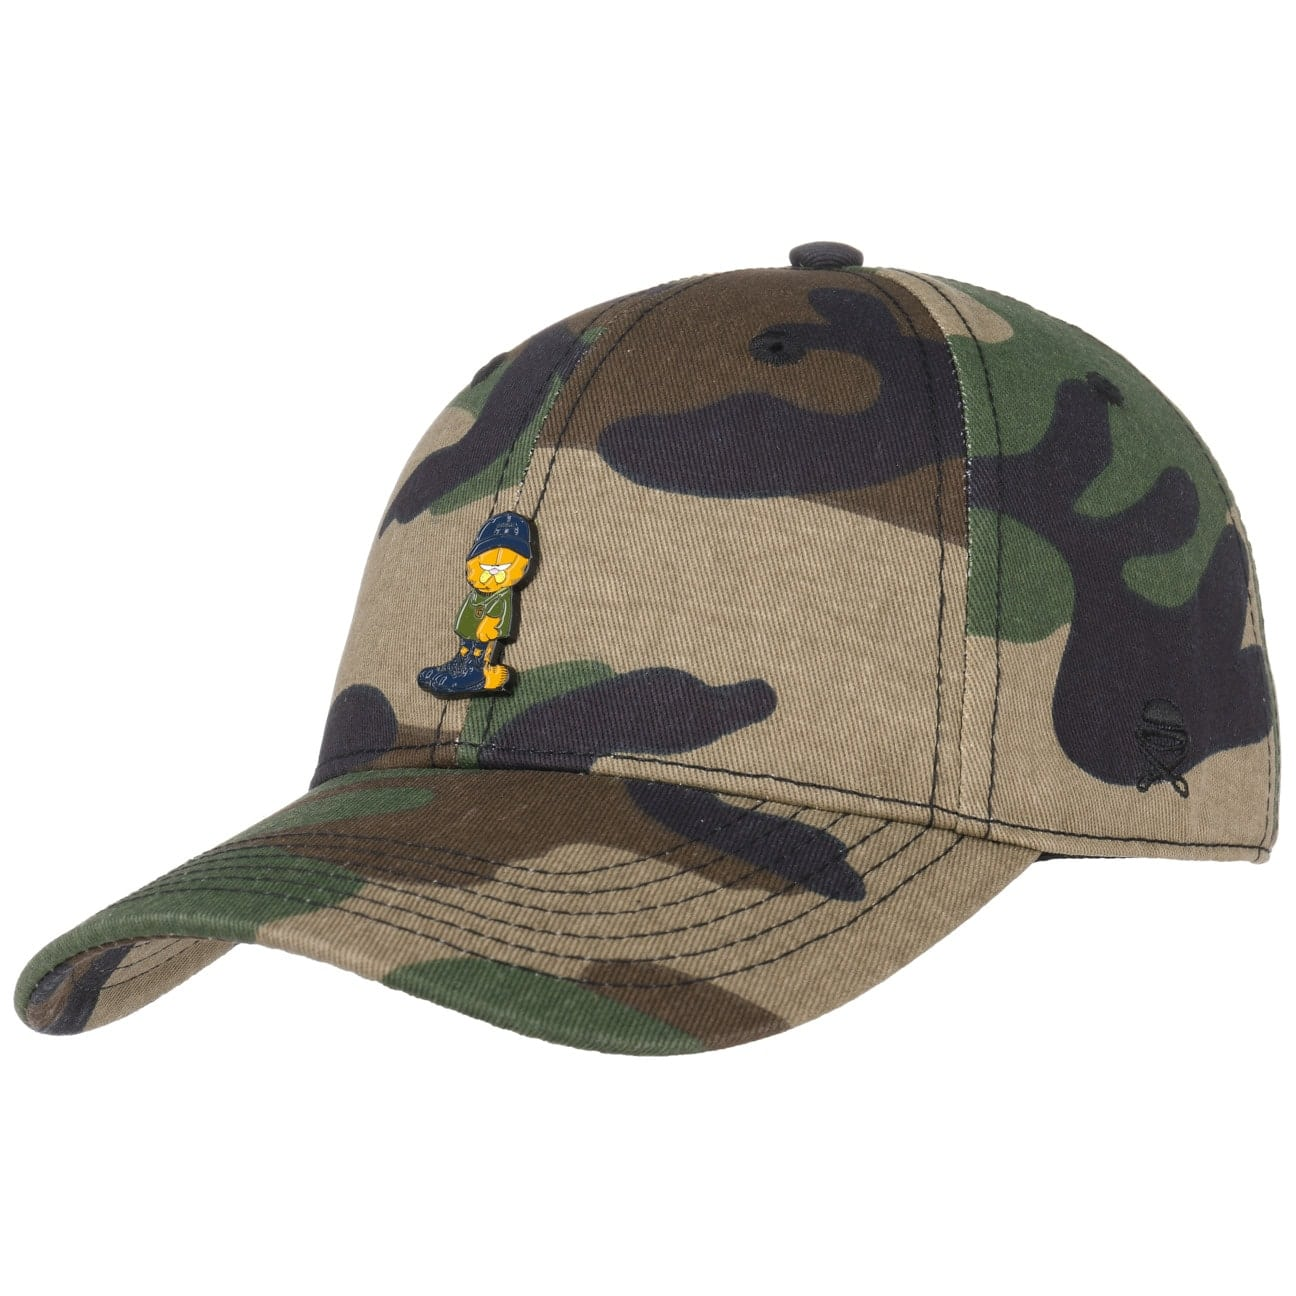 garfield-curved-cap-by-cayler-sons-basecap